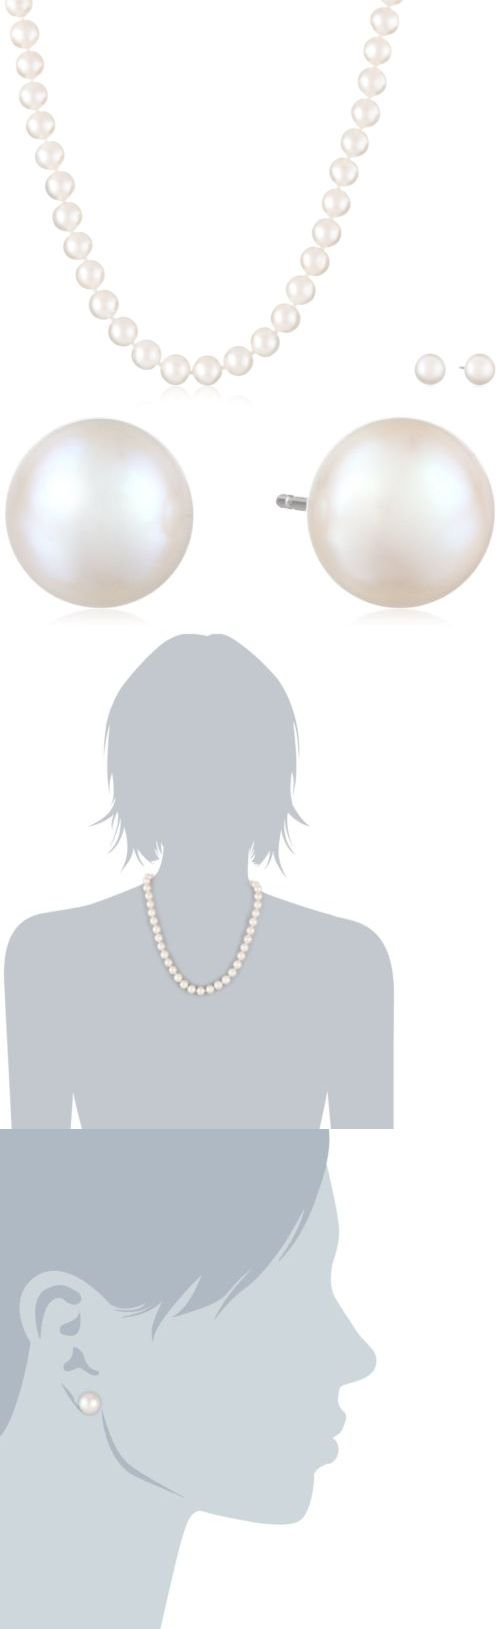 Pearl 164327: White Freshwater Cultured Pearl Necklace And Stud Earrings Set With Sterling ... -> BUY IT NOW ONLY: $74.48 on eBay!